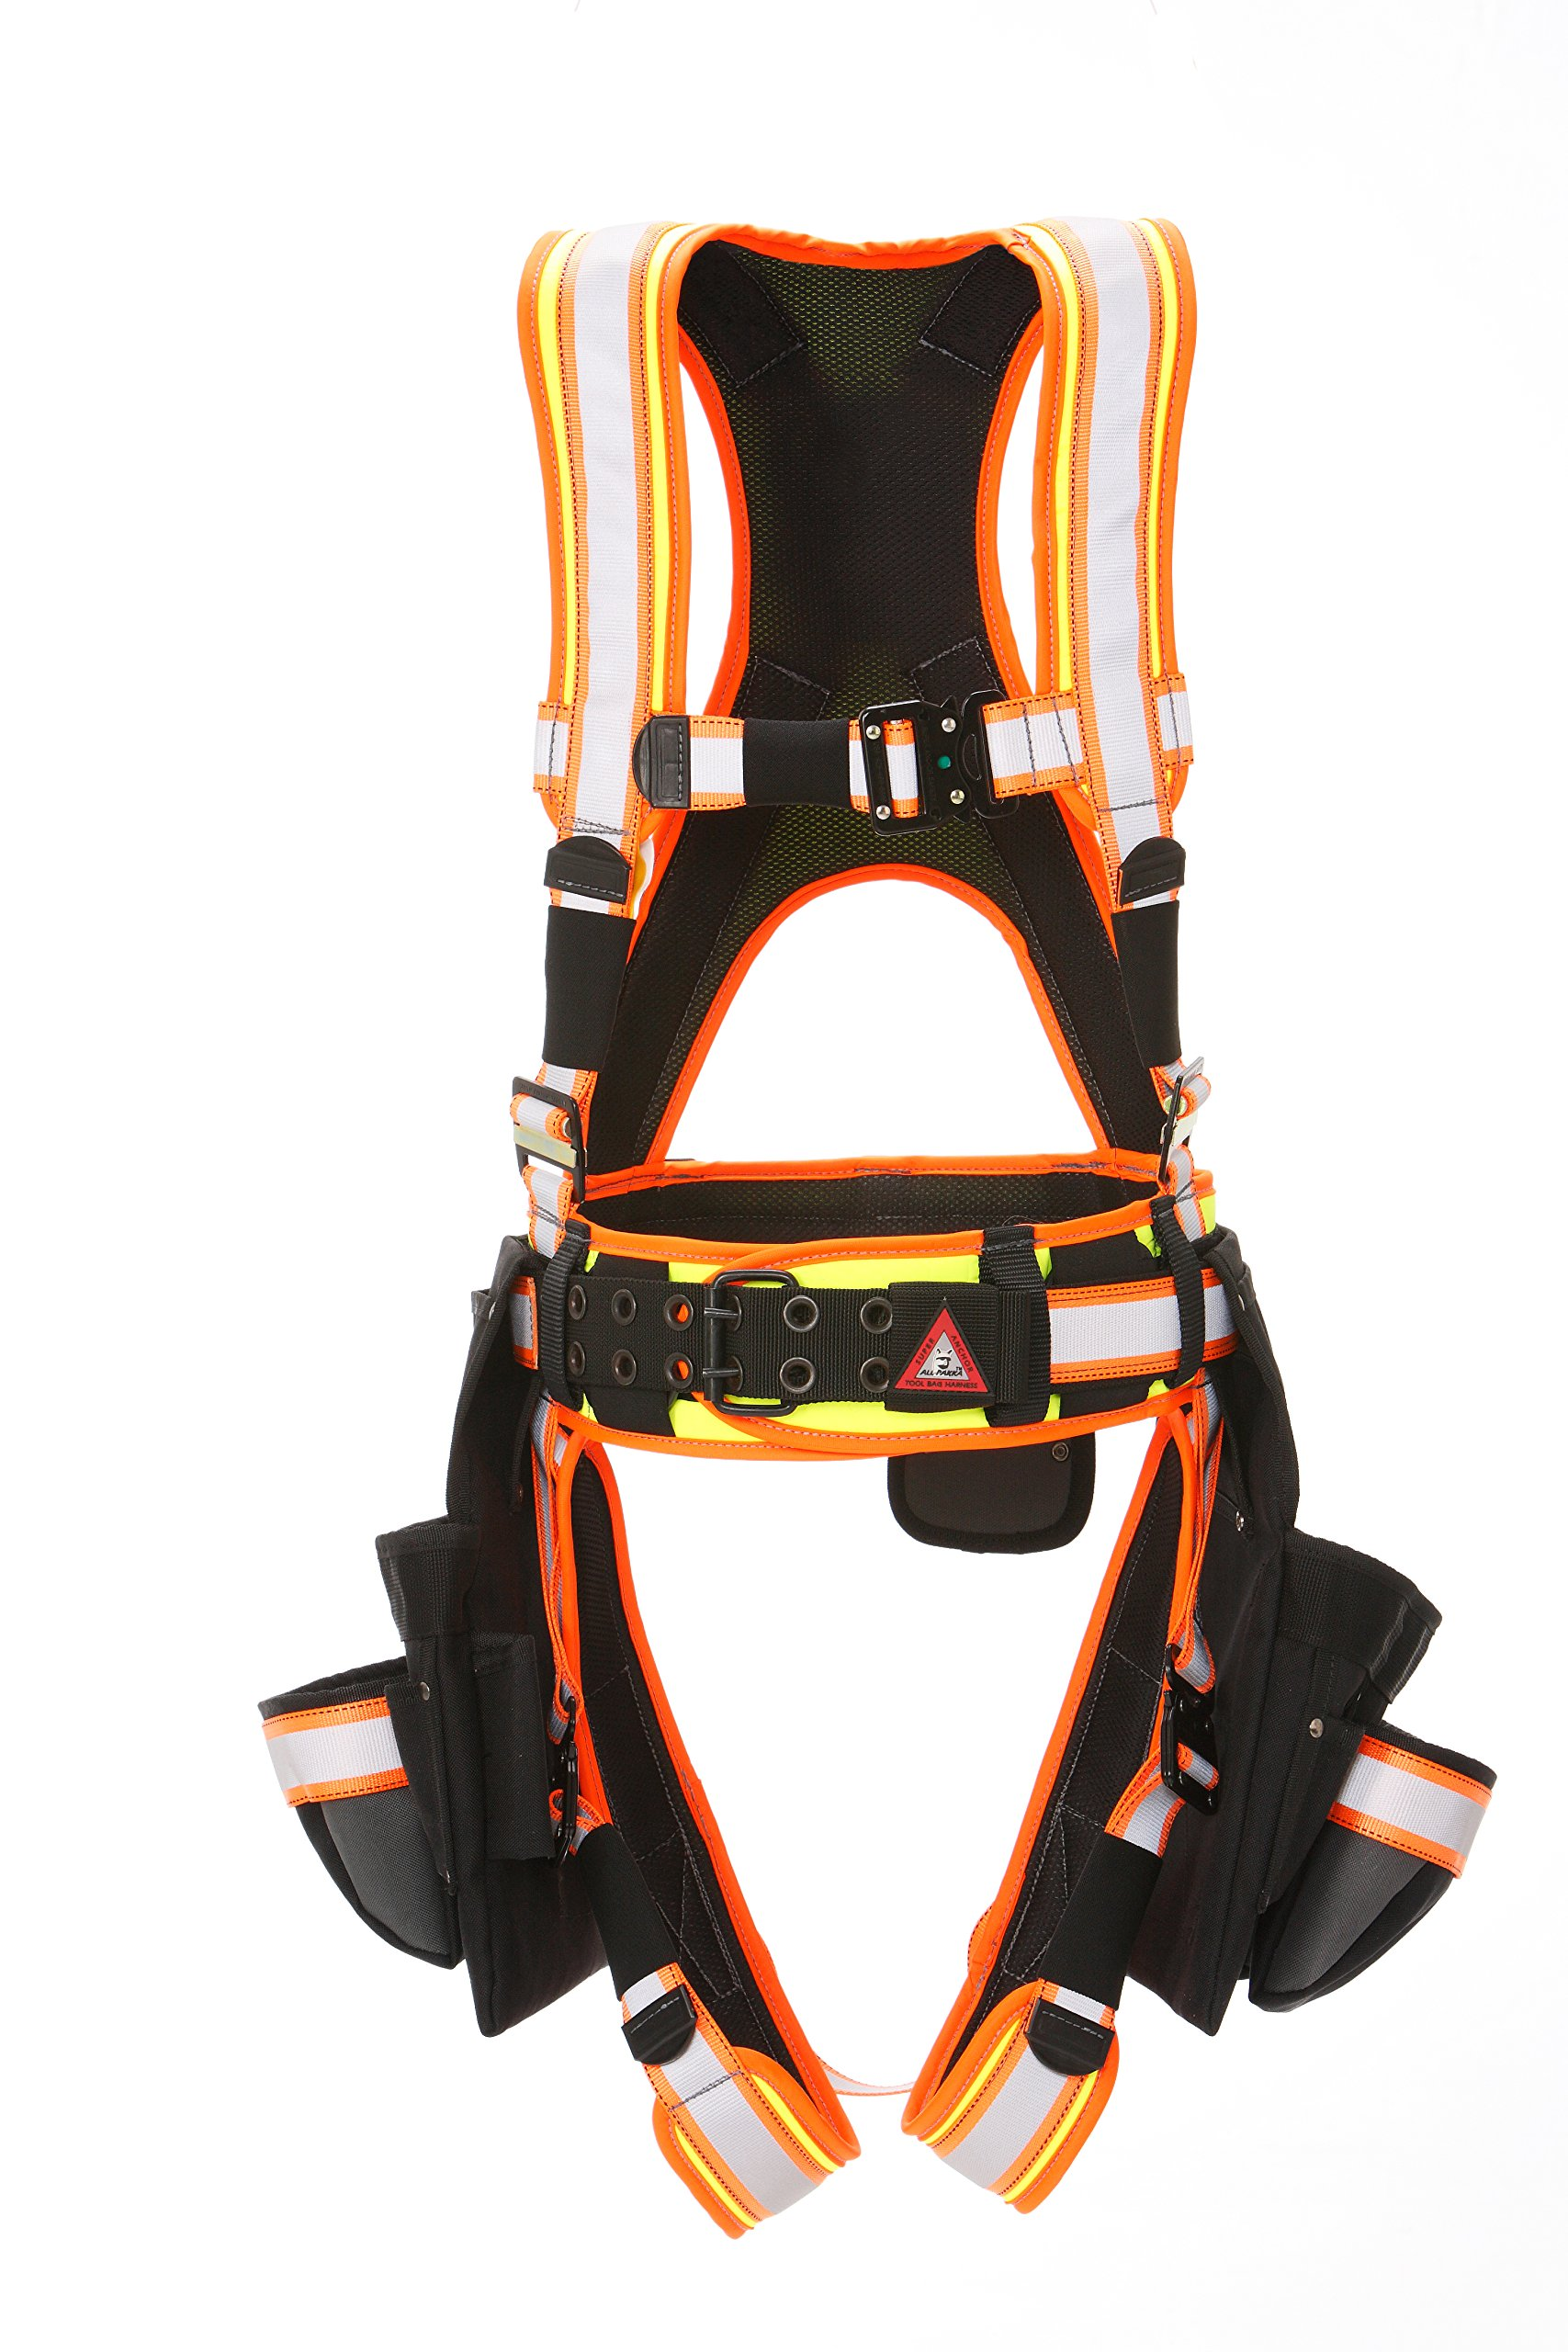 Super Anchor Safety 6161-L ANSI Class 1 Deluxe Full Body Harness plus All-Pakka Tool Bag Combo, Large, Ultra Viz